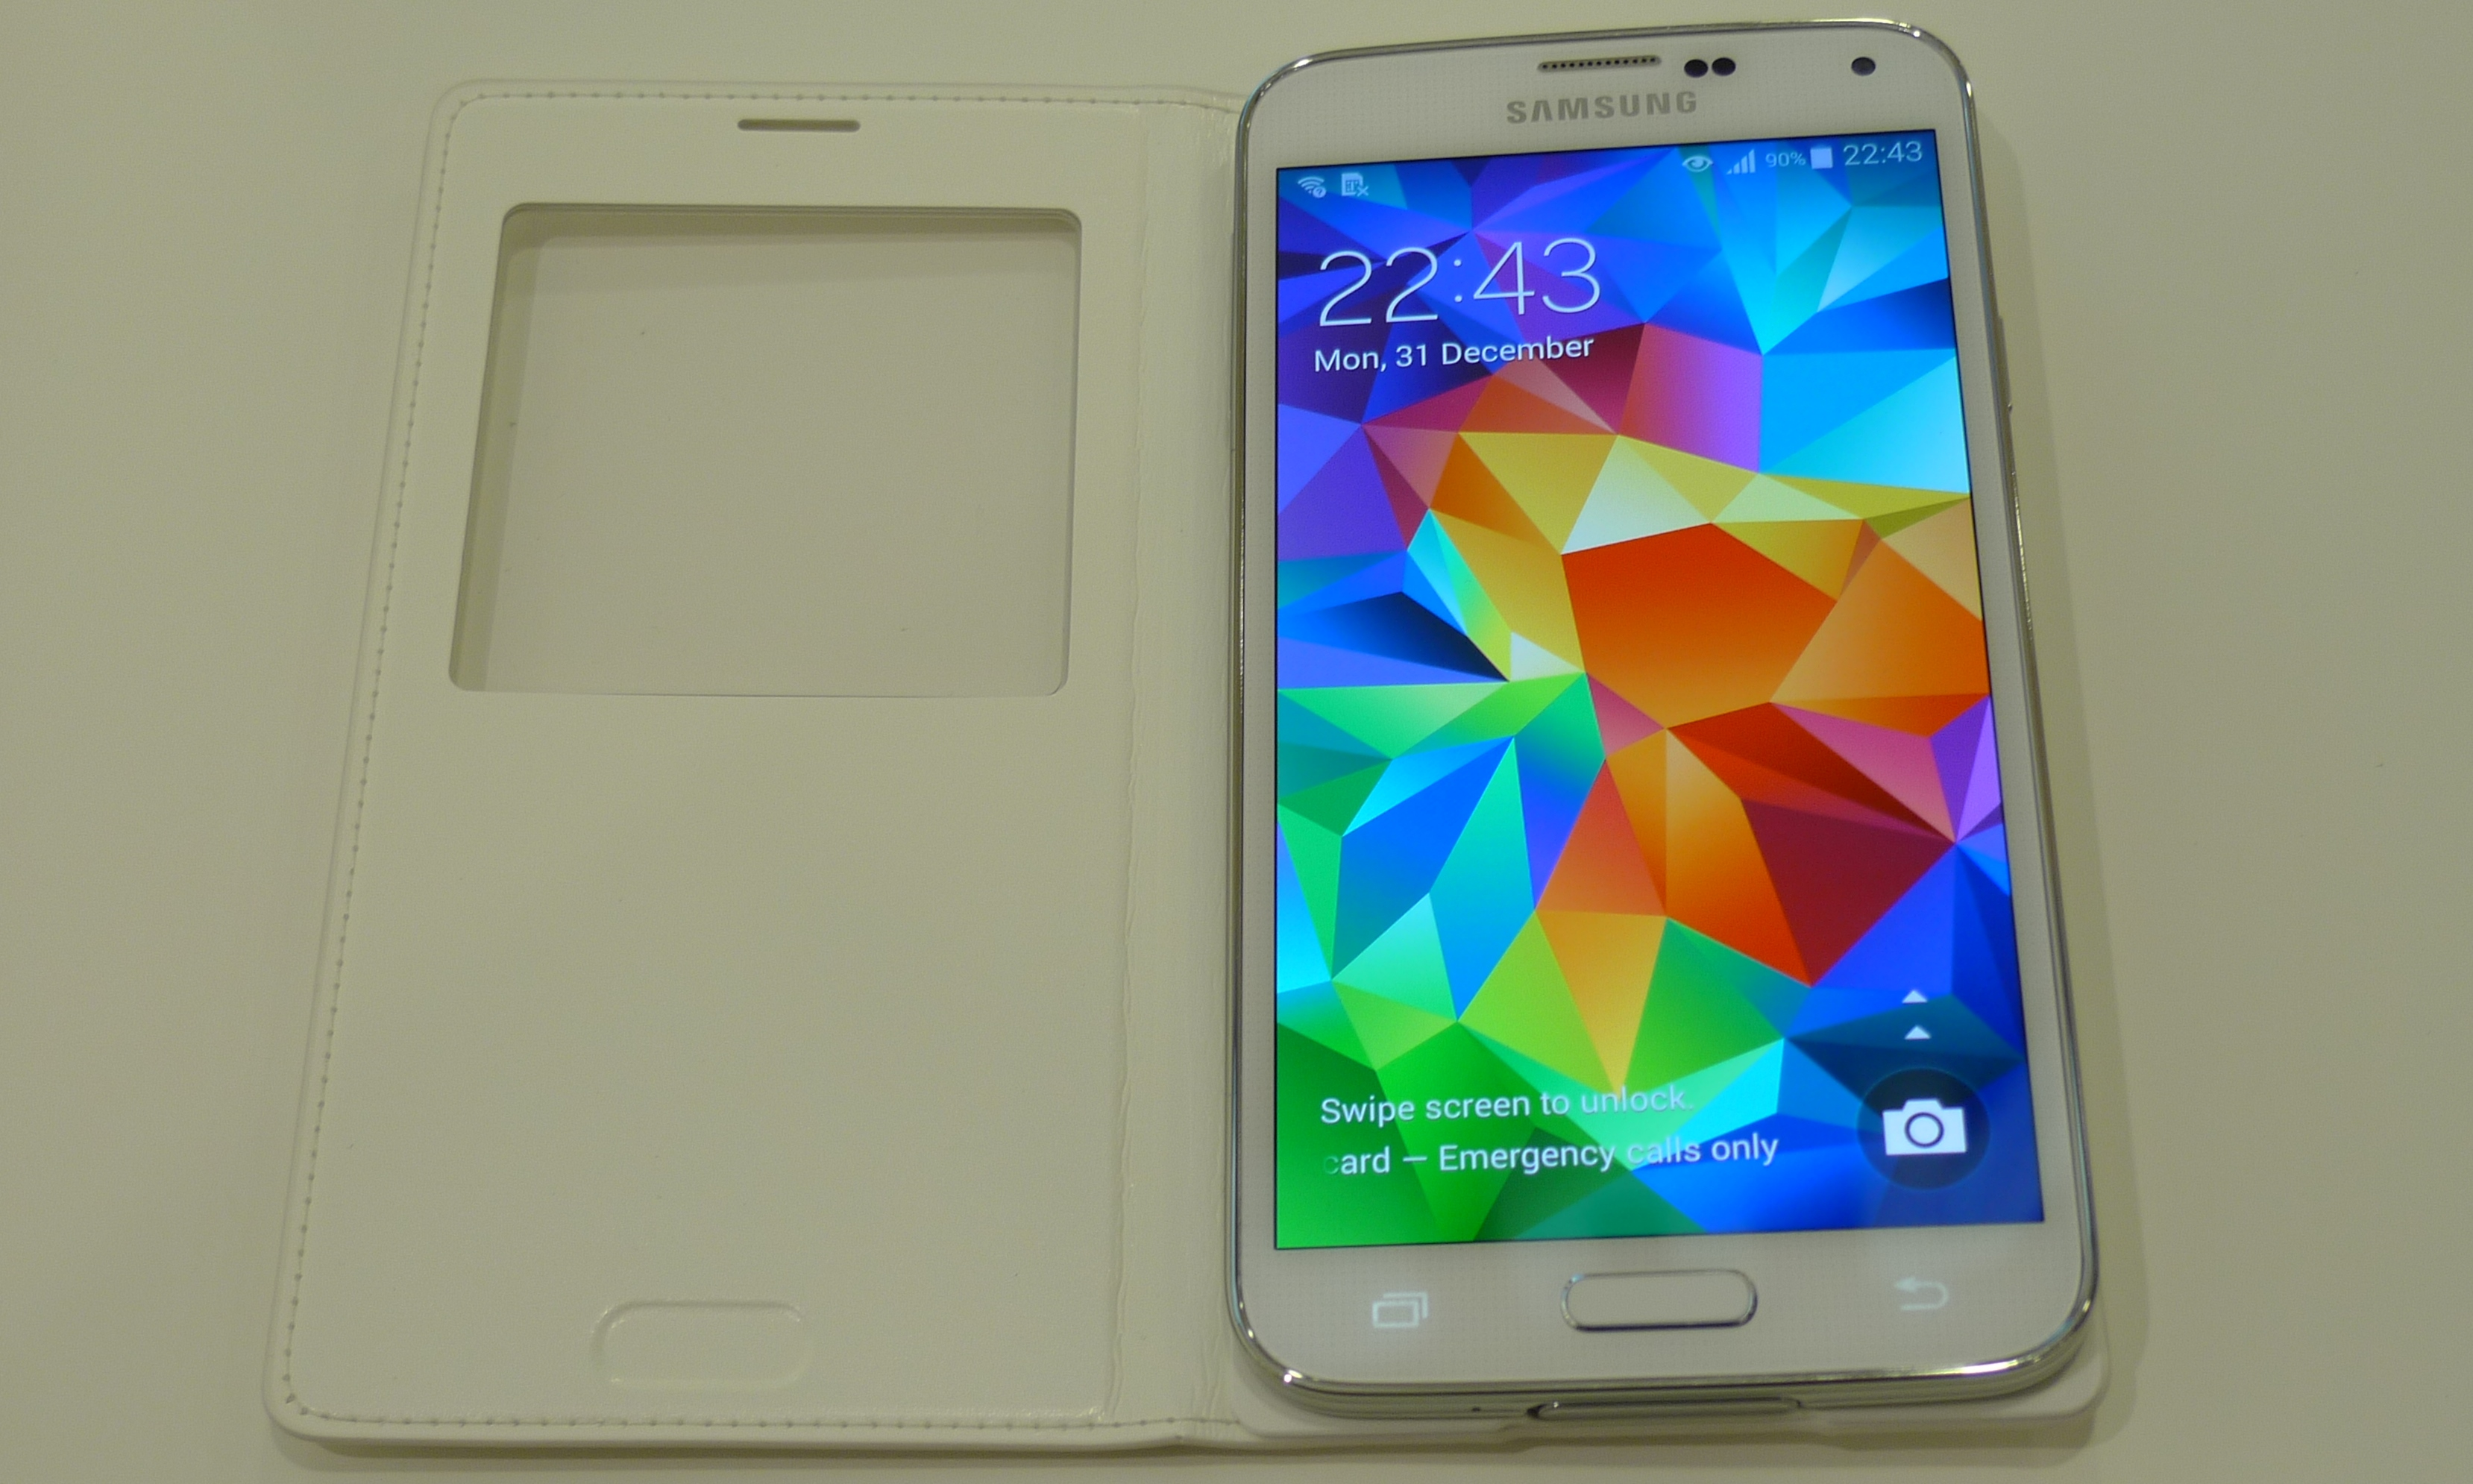 samsung galaxy s5 white vs black. p1080032 samsung galaxy s5 white vs black /